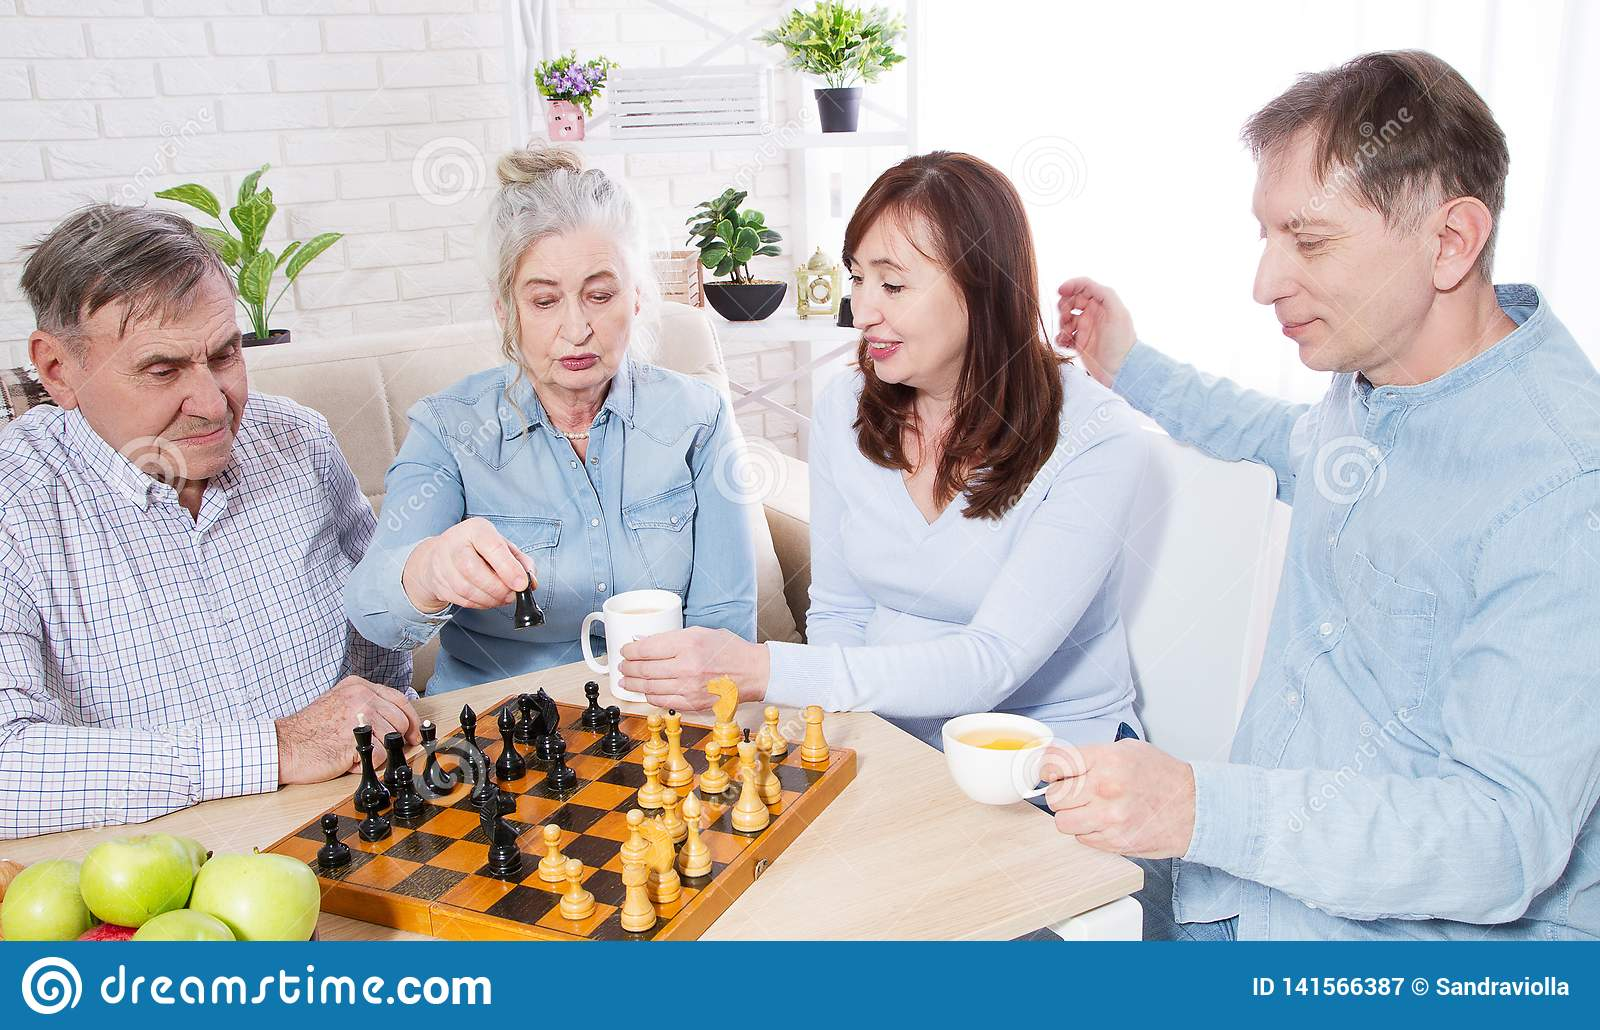 Happy family chess game time at nursing home for elderly. Parents with children have fun talk and leisure. Senior couple